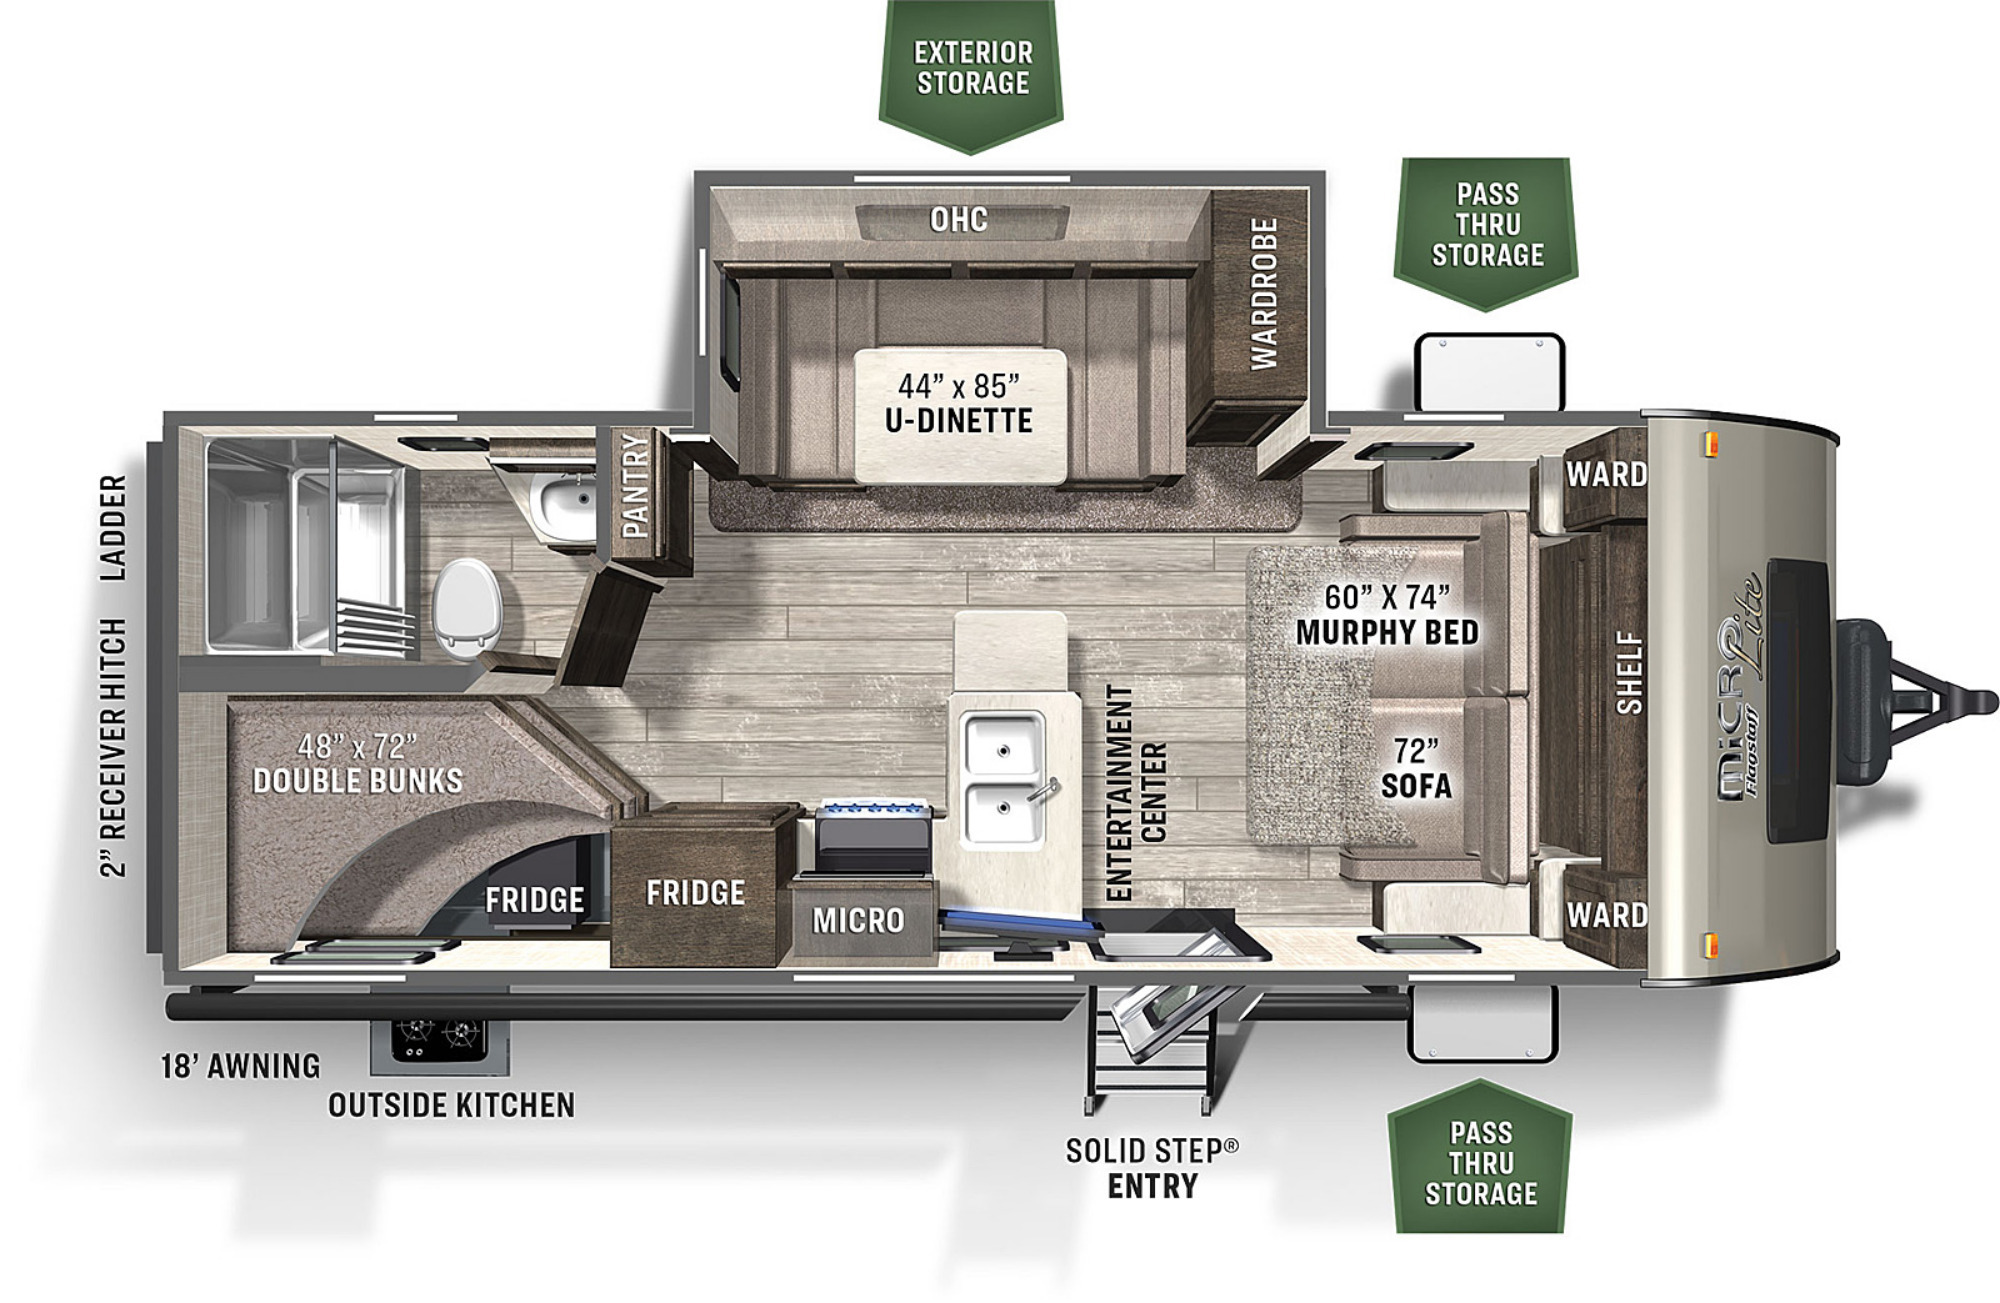 View Floor Plan for 2022 FOREST RIVER FLAGSTAFF MICRO LITE 25BRDS